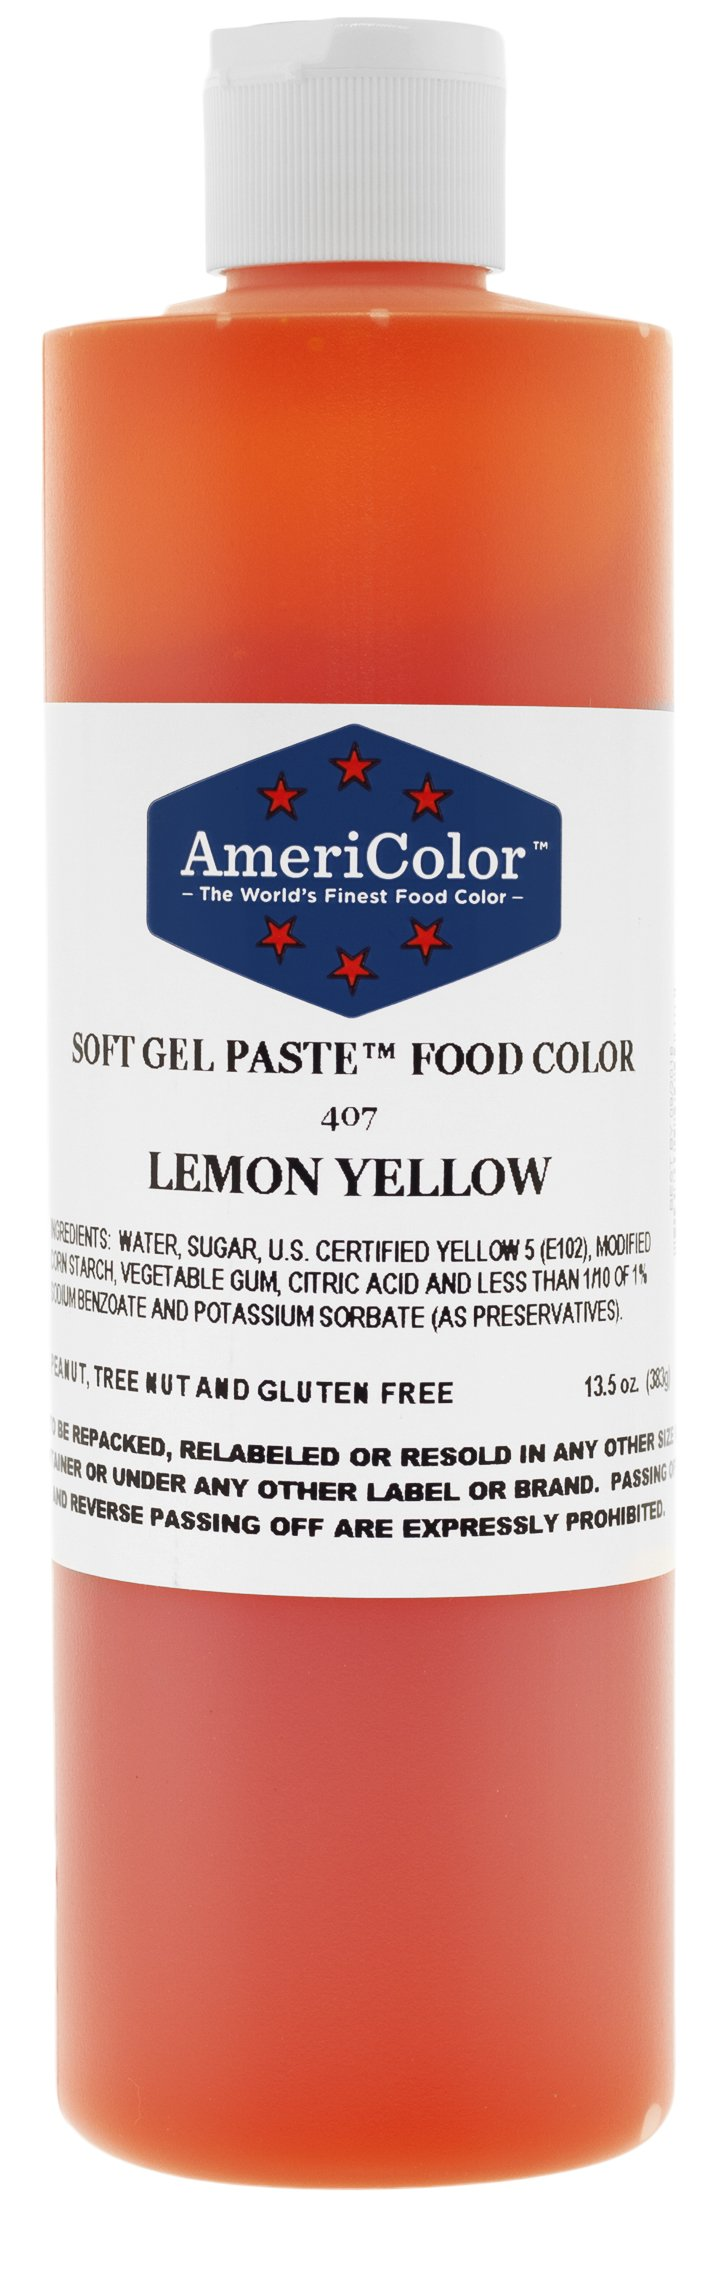 Americolor Soft Gel Paste Food Color, 13.5-Ounce, Lemon Yellow